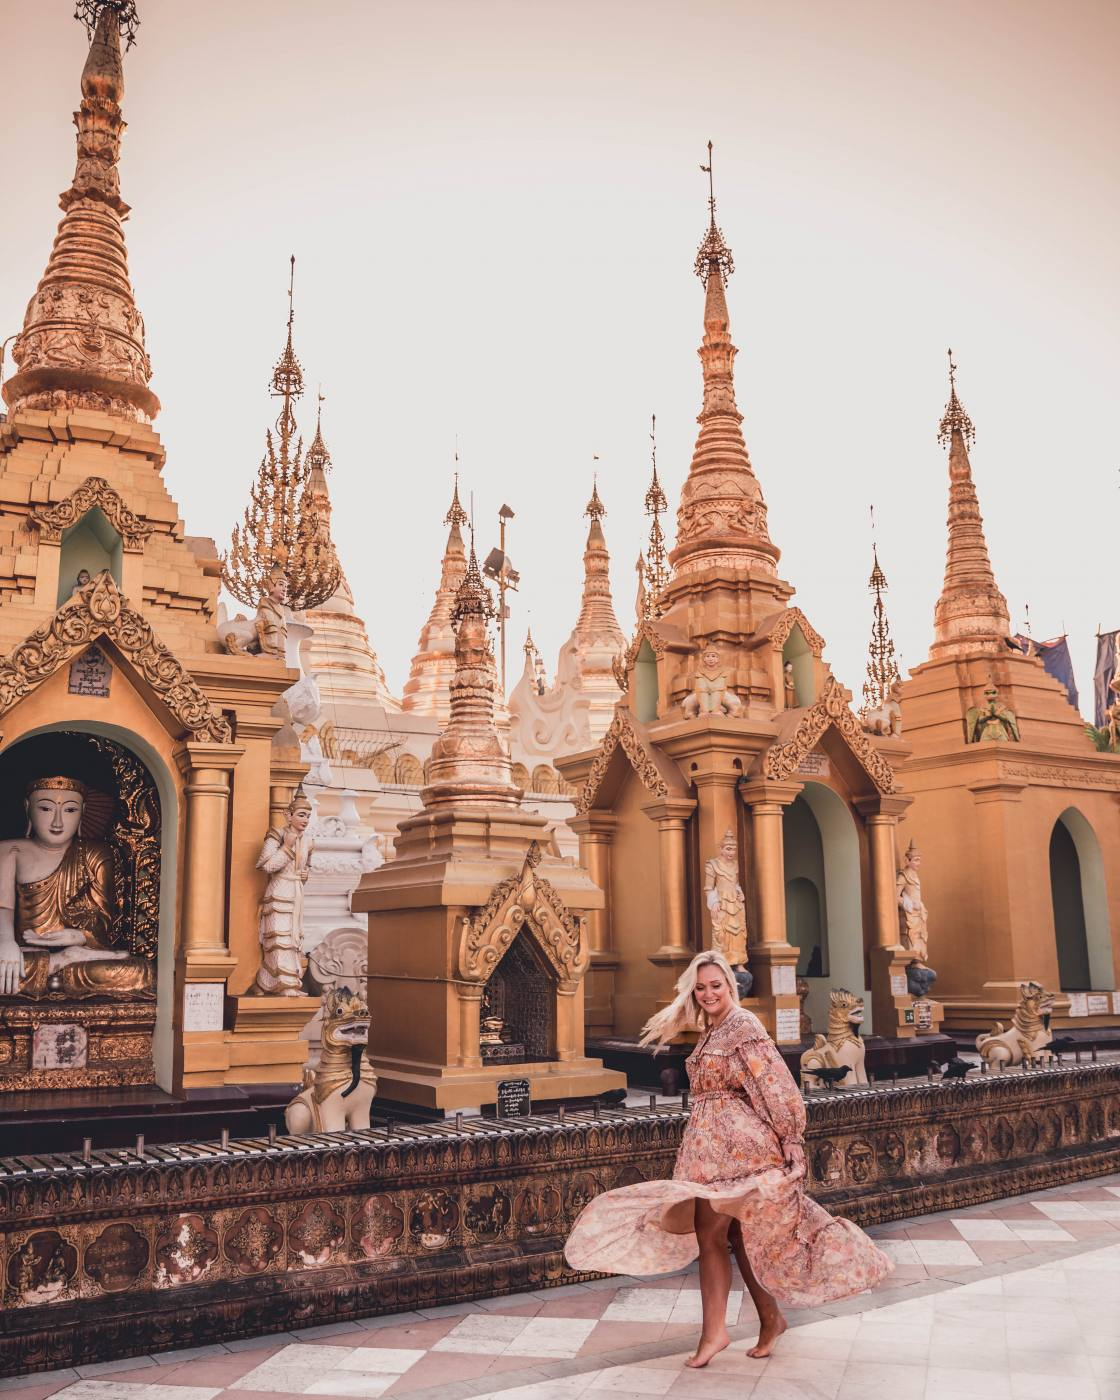 The Most Instagrammable places in Yangon, Myanmar